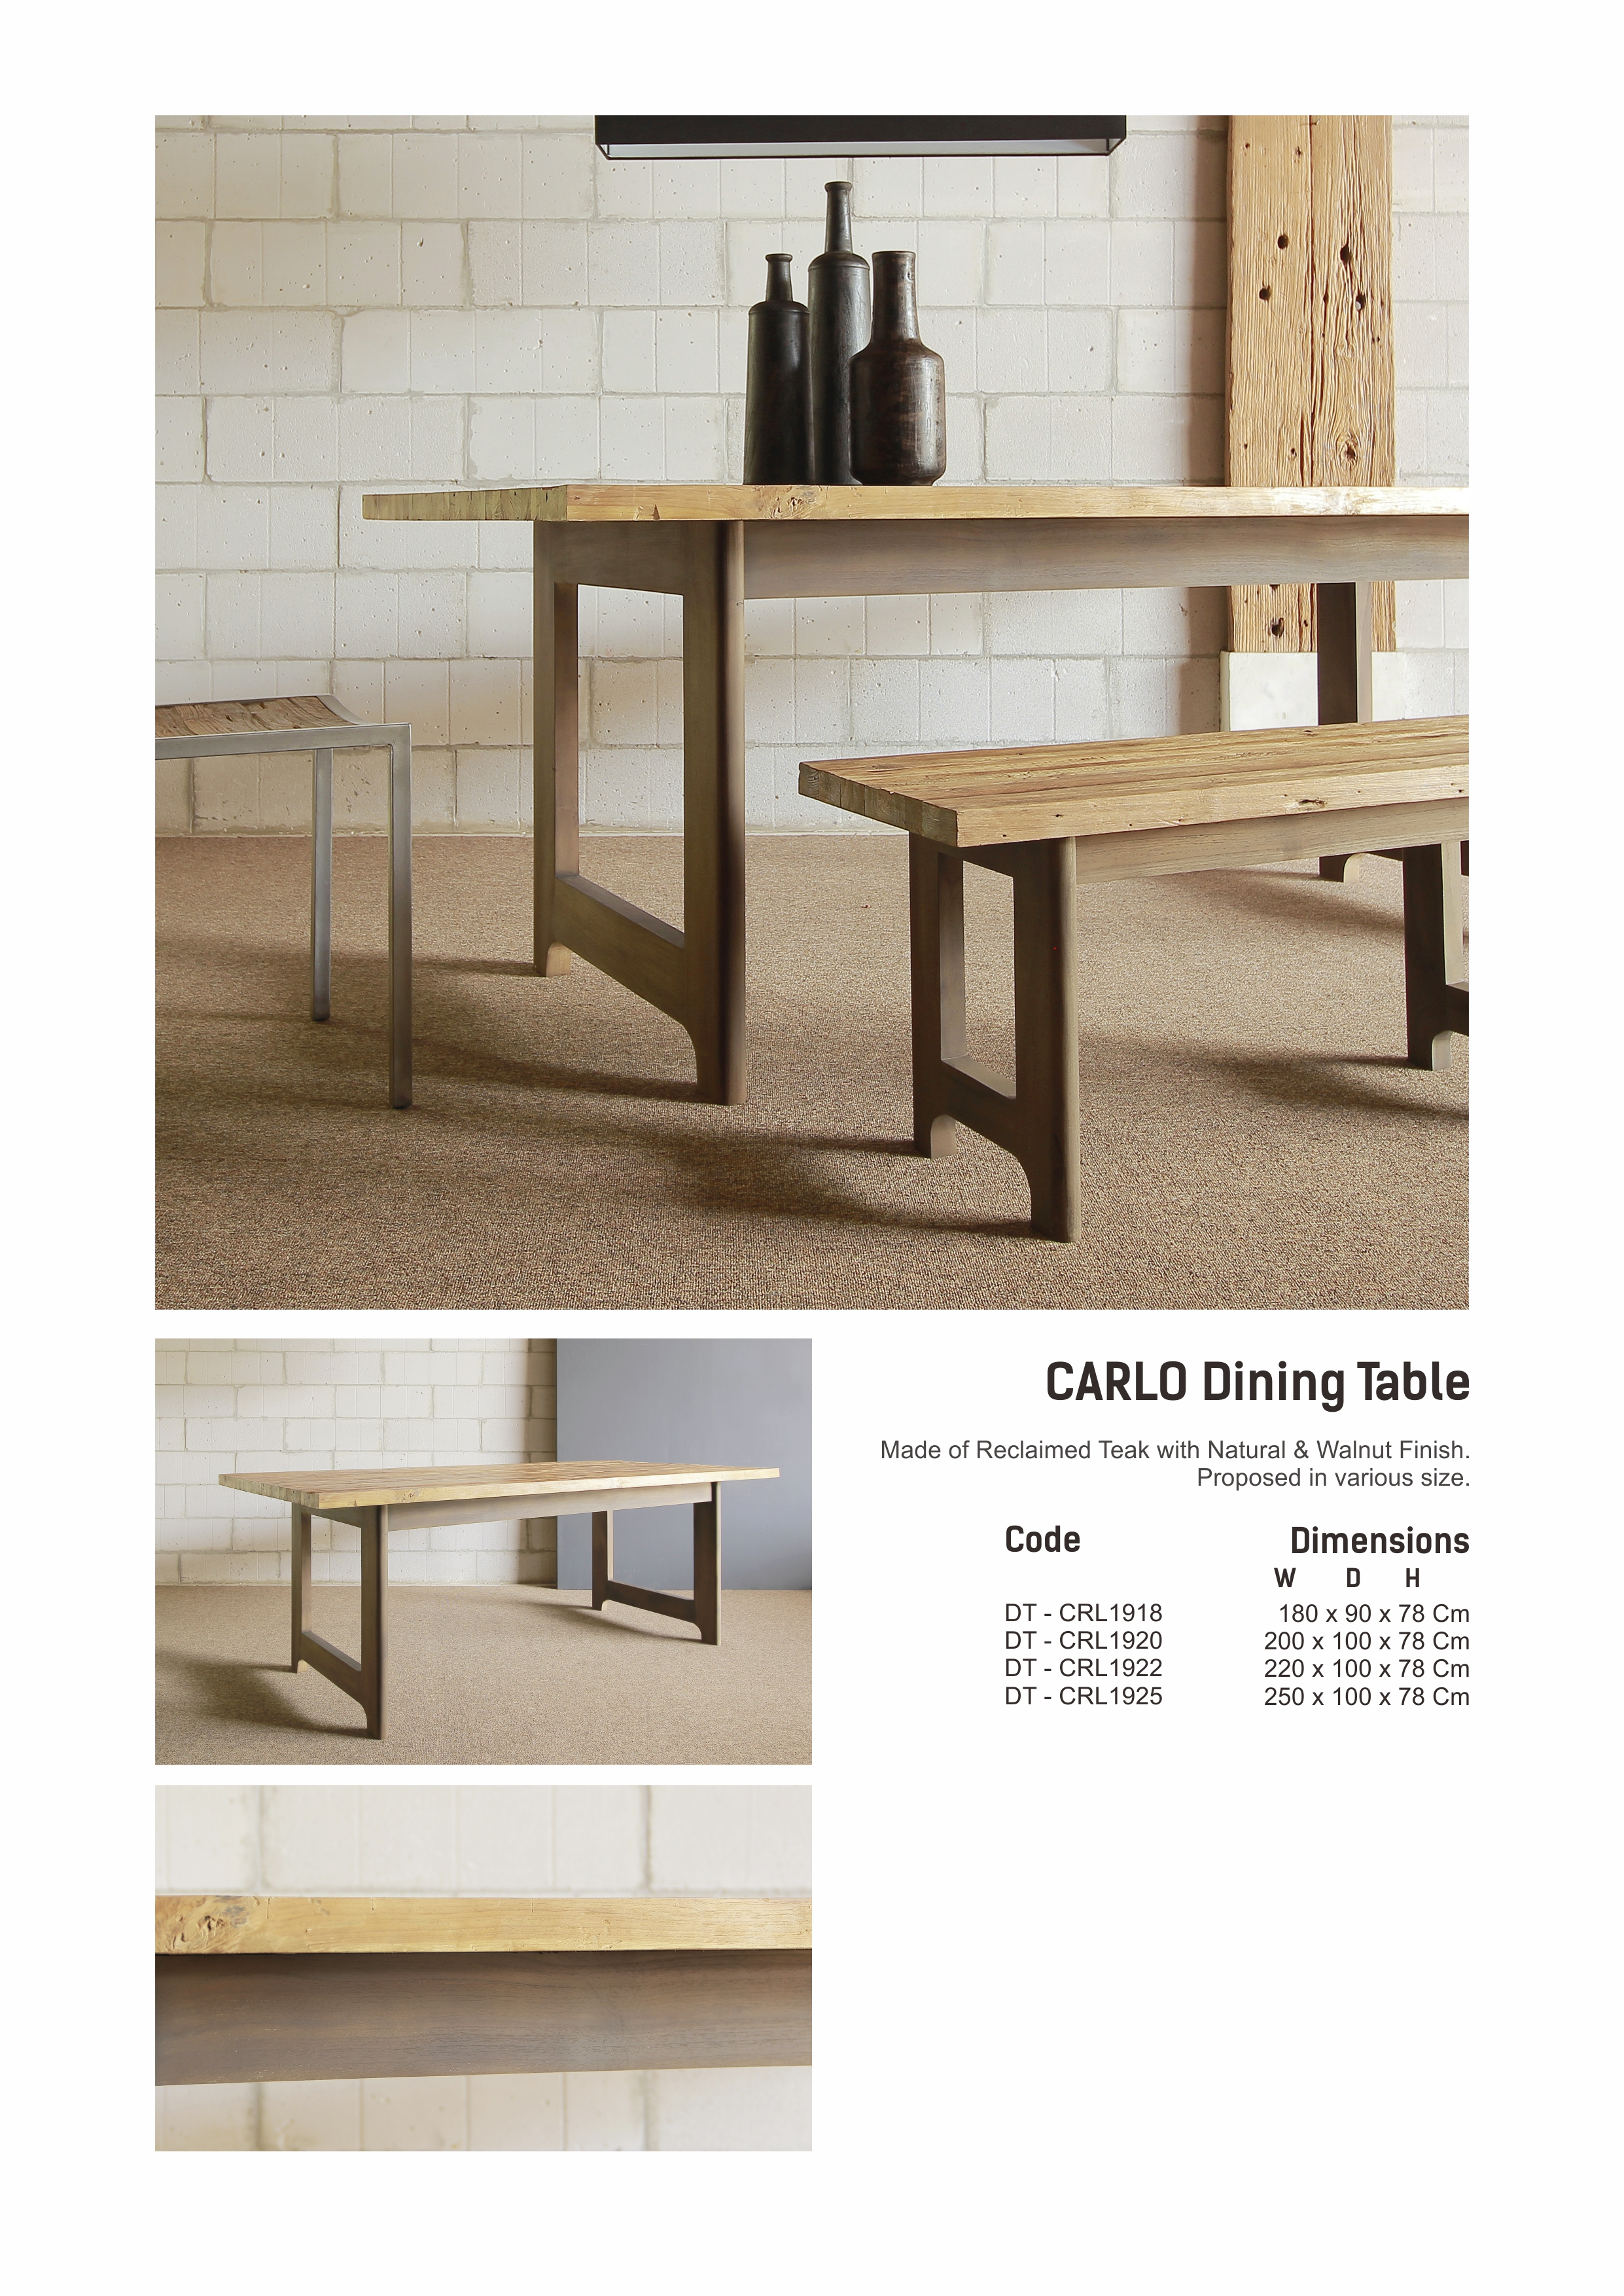 19. CARLO Dining Table